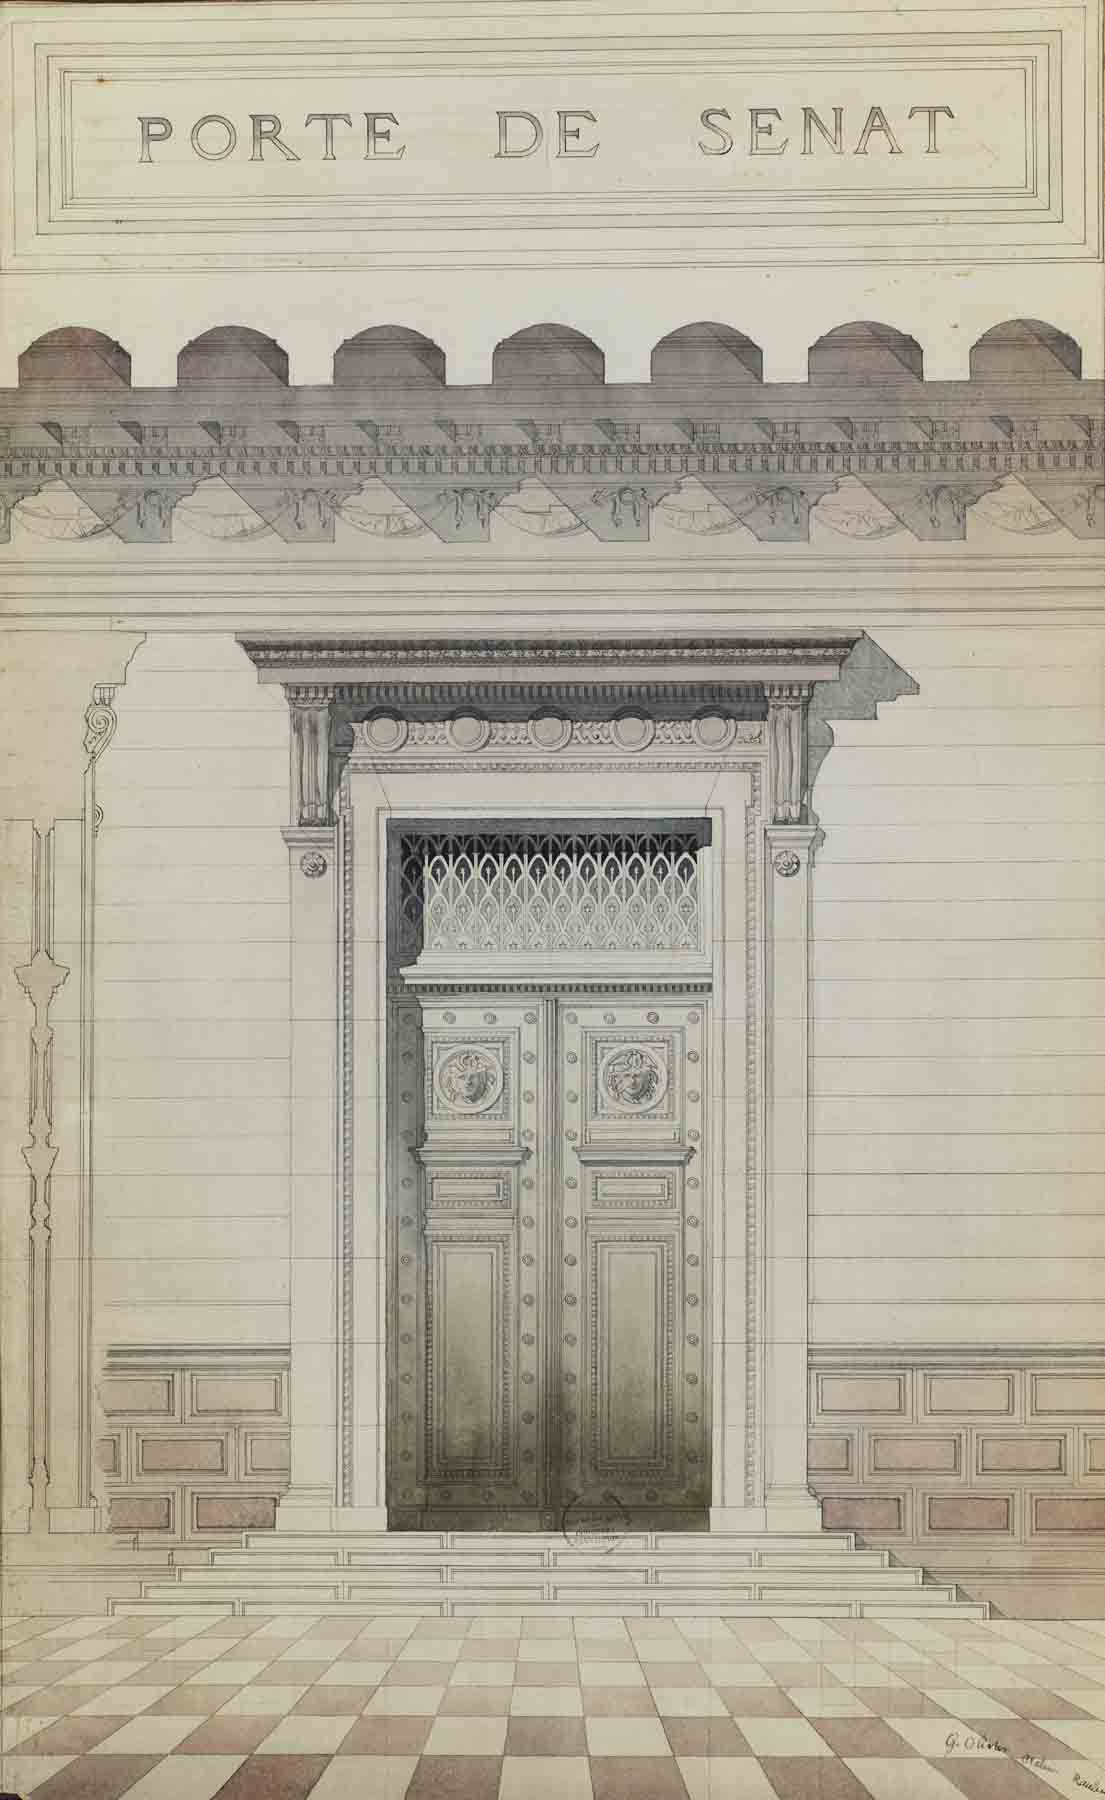 """Jules-Germain Olivier (French, 1869-1940),  Senate Door,  late 1880s, pencil, ink and watercolor on paper, 41 7/8 x 27 13/16"""" framed"""